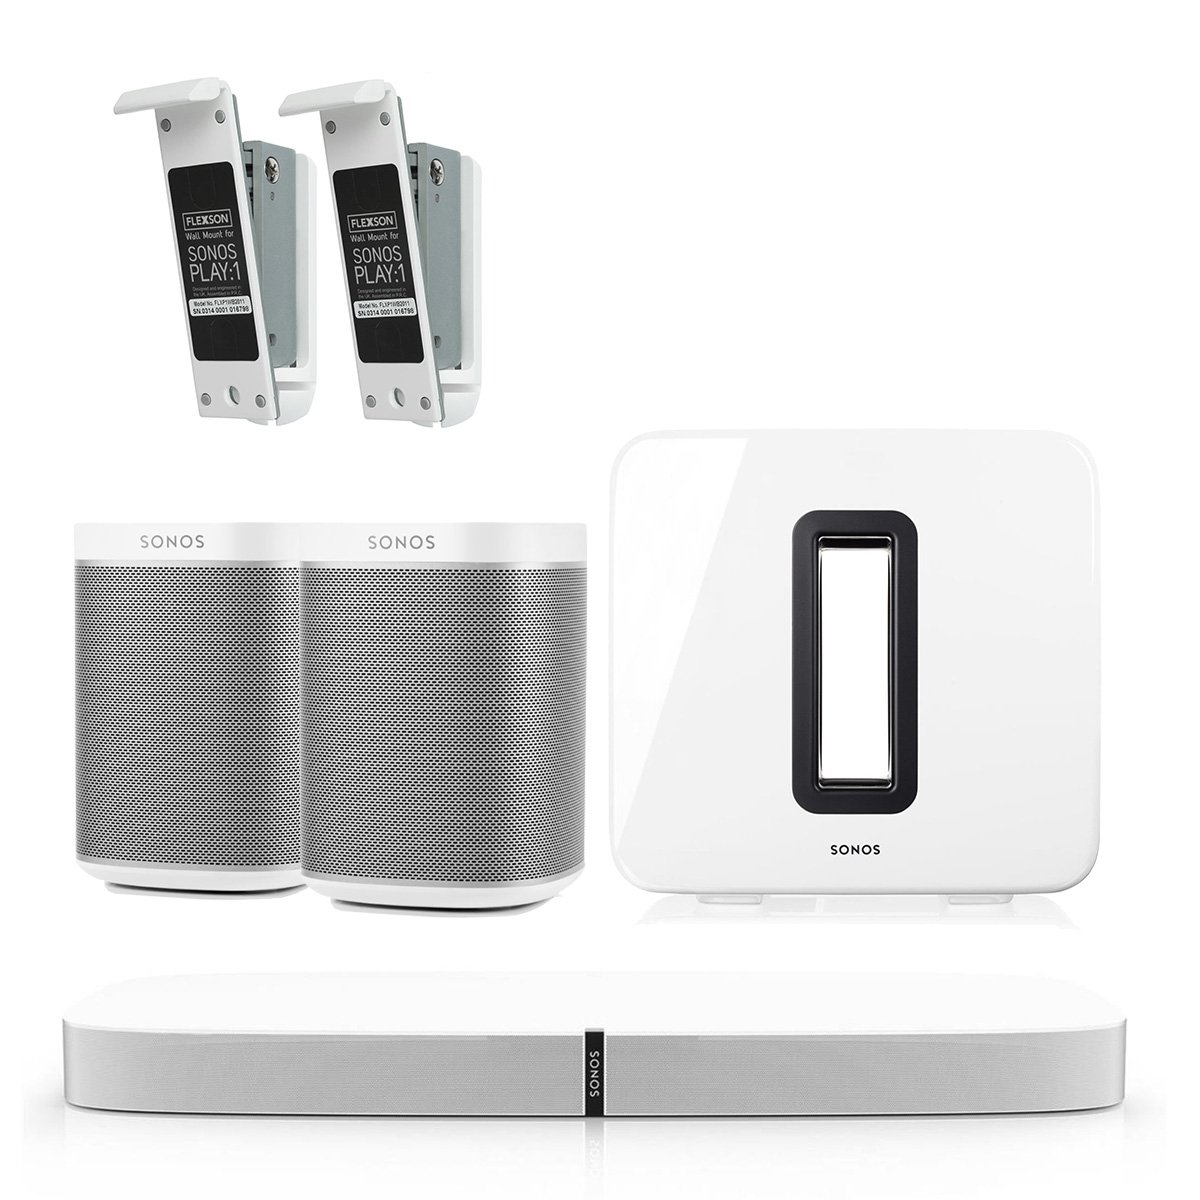 Sonos 5.1 PLAY Home Theater Digital Music System with Flexson Wall Mounts for PLAY:1 (White) by Sonos